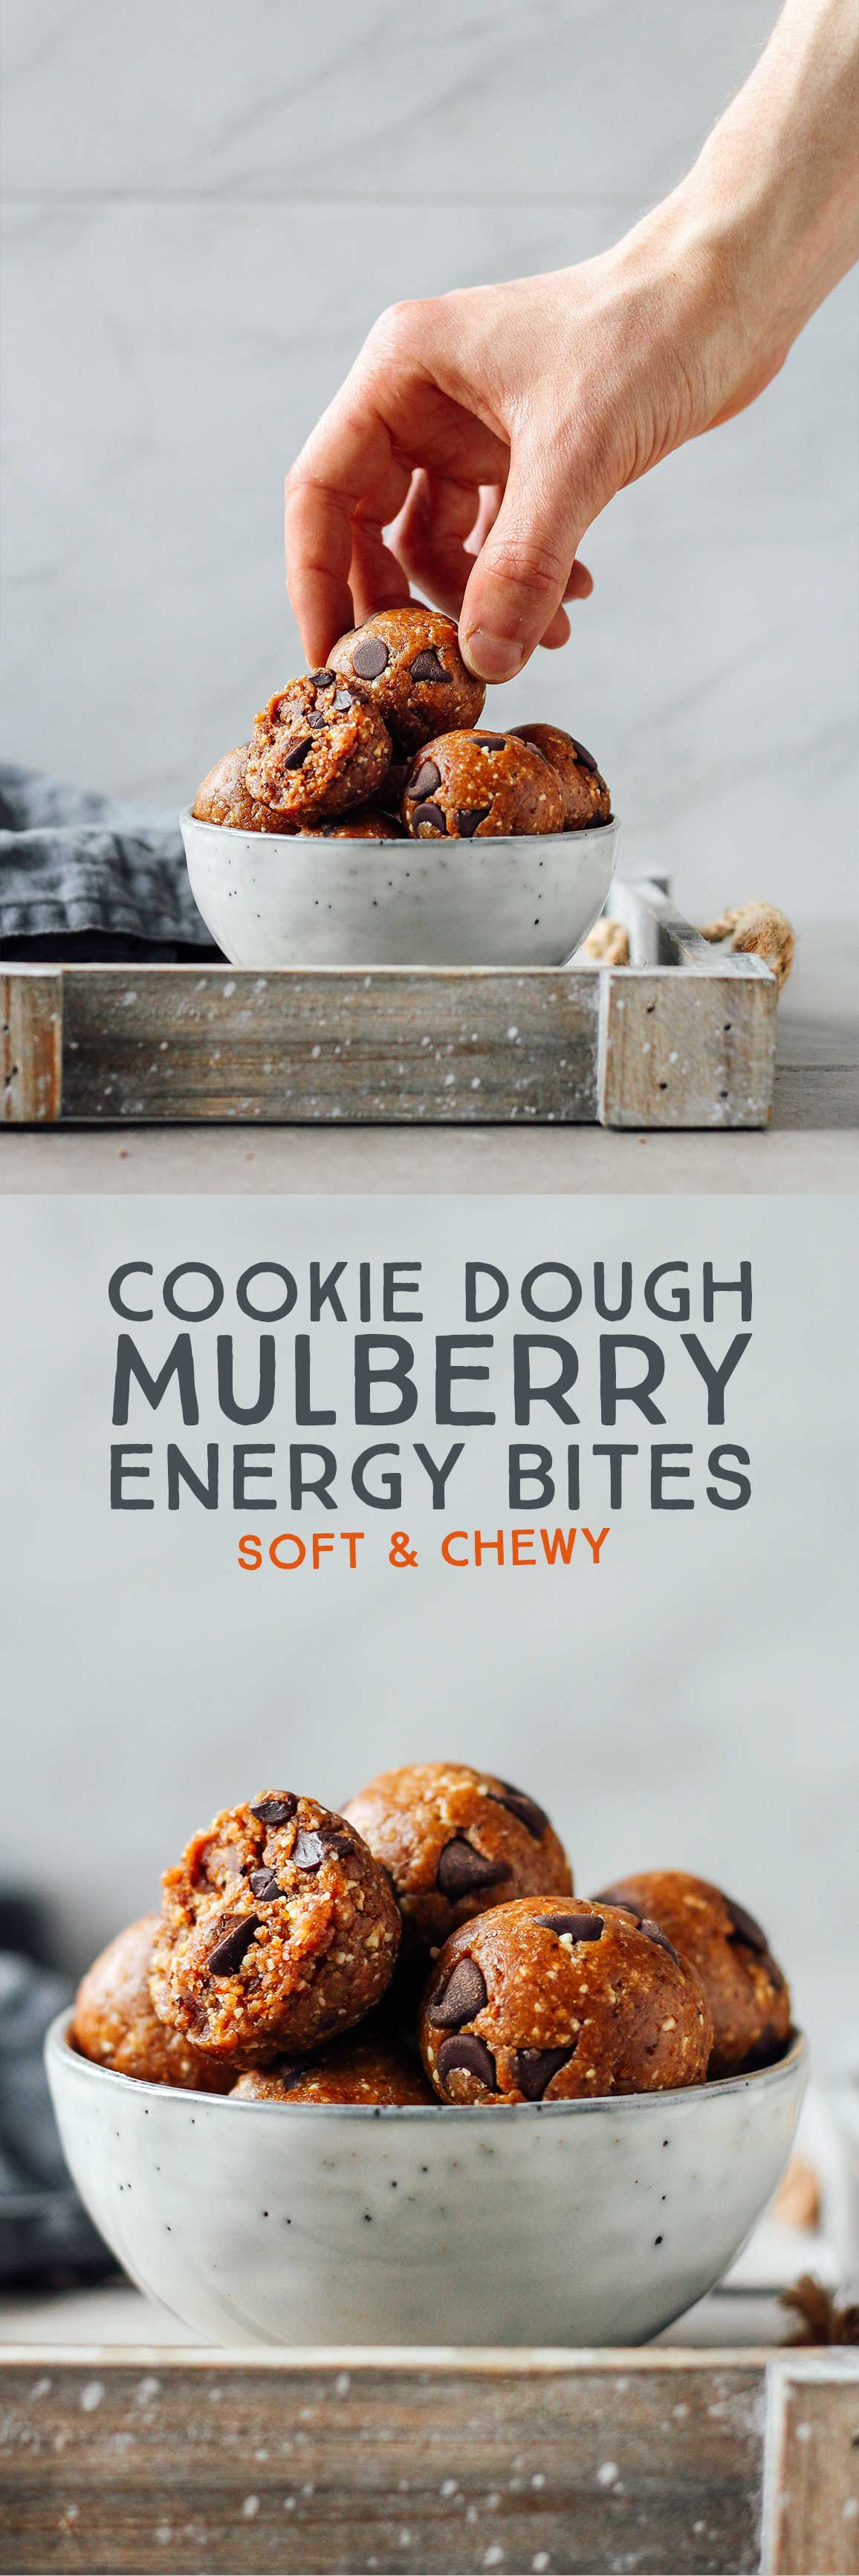 Cookie Dough Mulberry Energy Bites